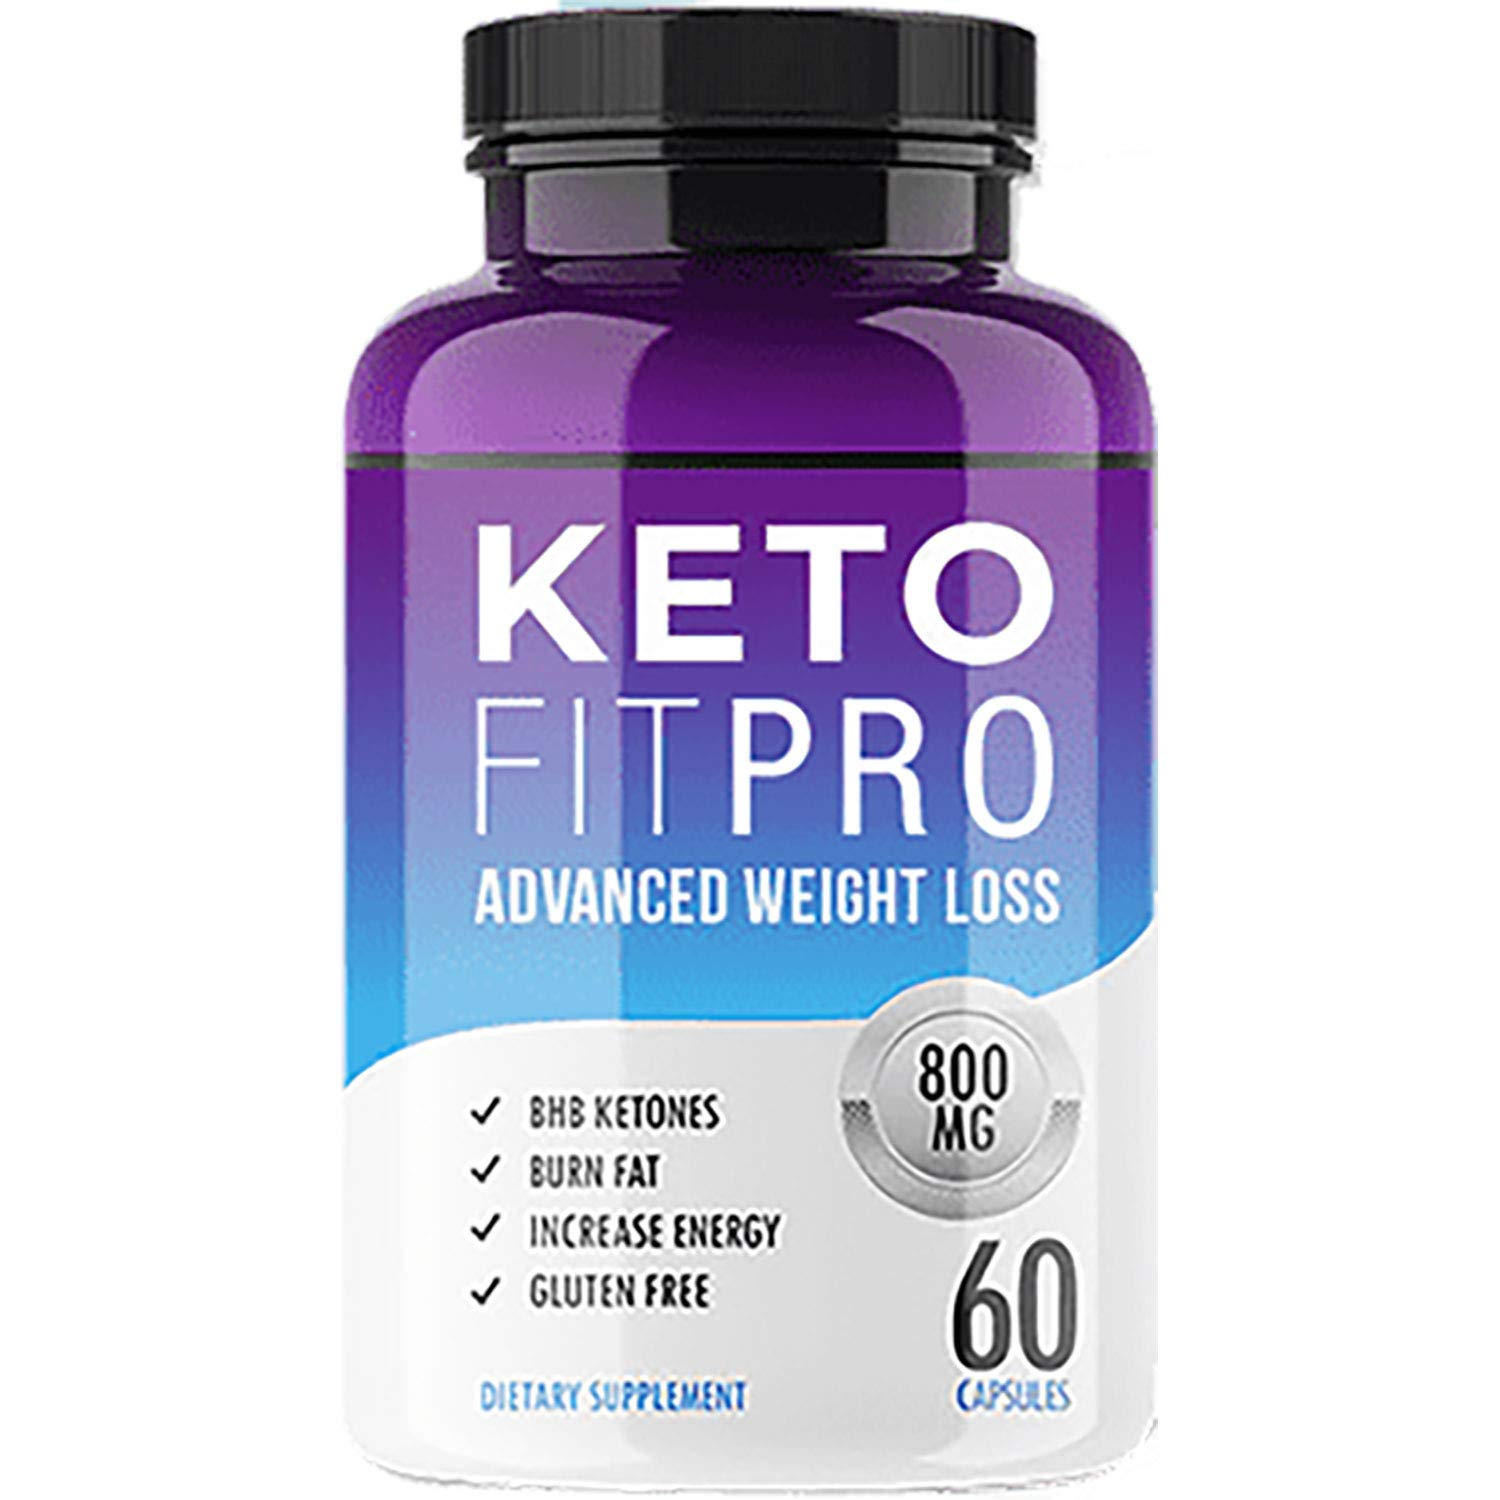 Keto Fit Pro - Advanced Ketosis Weight Loss - Premium Keto Diet Pills - Burn Fat for Energy not Carbs by Keto Fit Pro